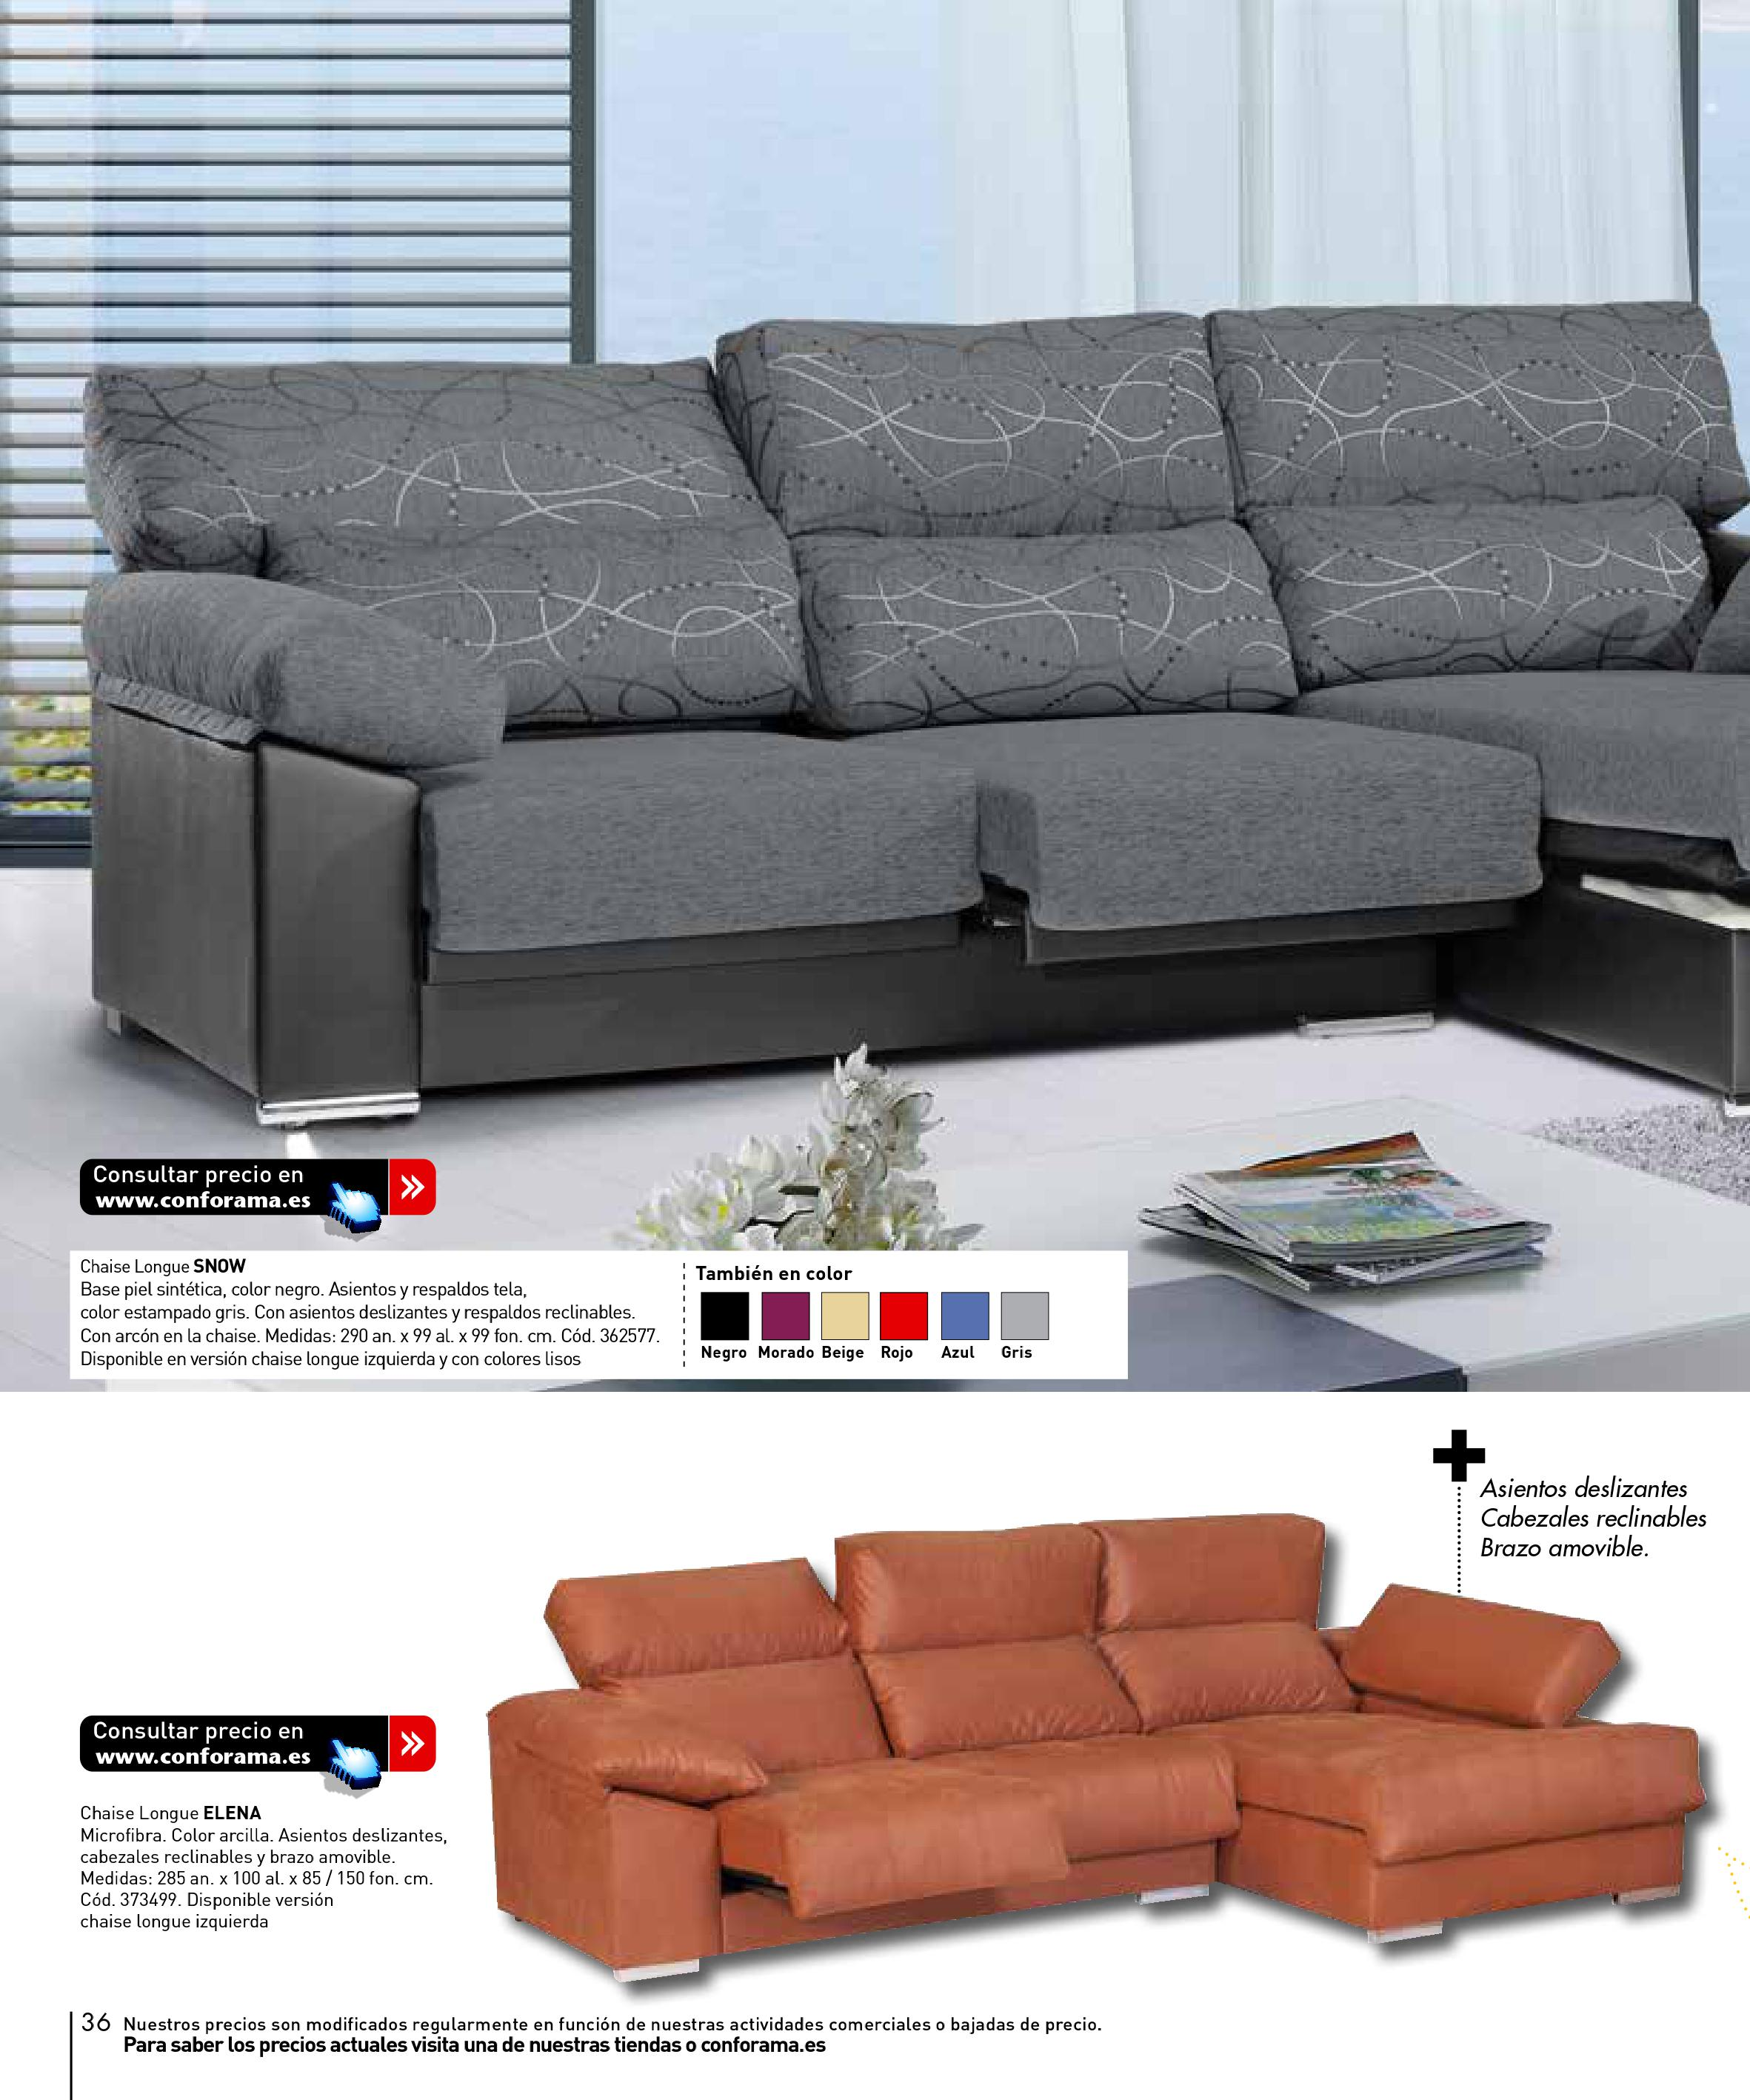 Sofas conforama 201536 for Sofas conforama catalogo